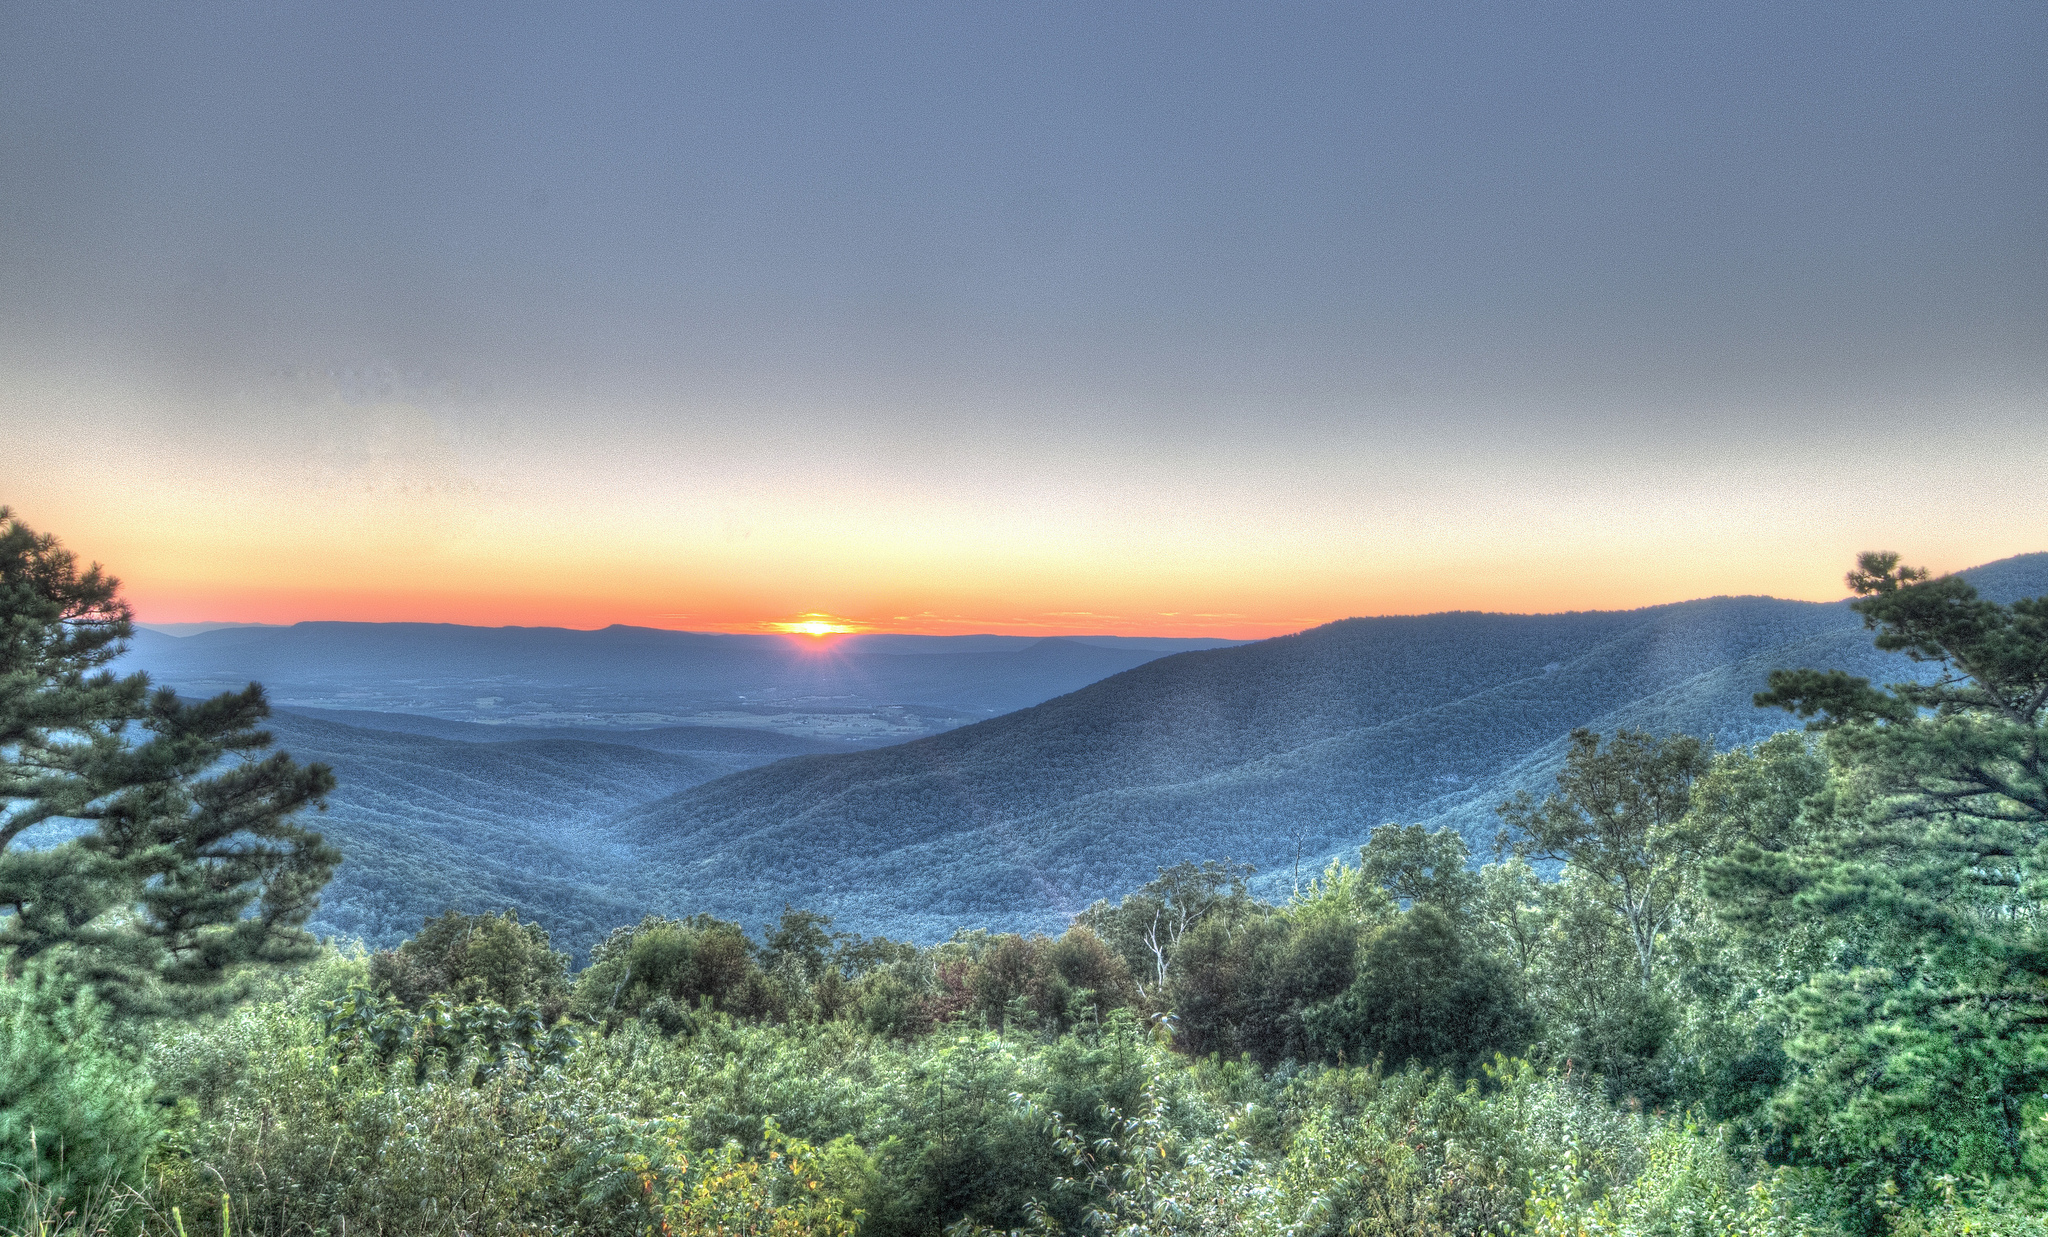 Blue Ridge Mountains, USA